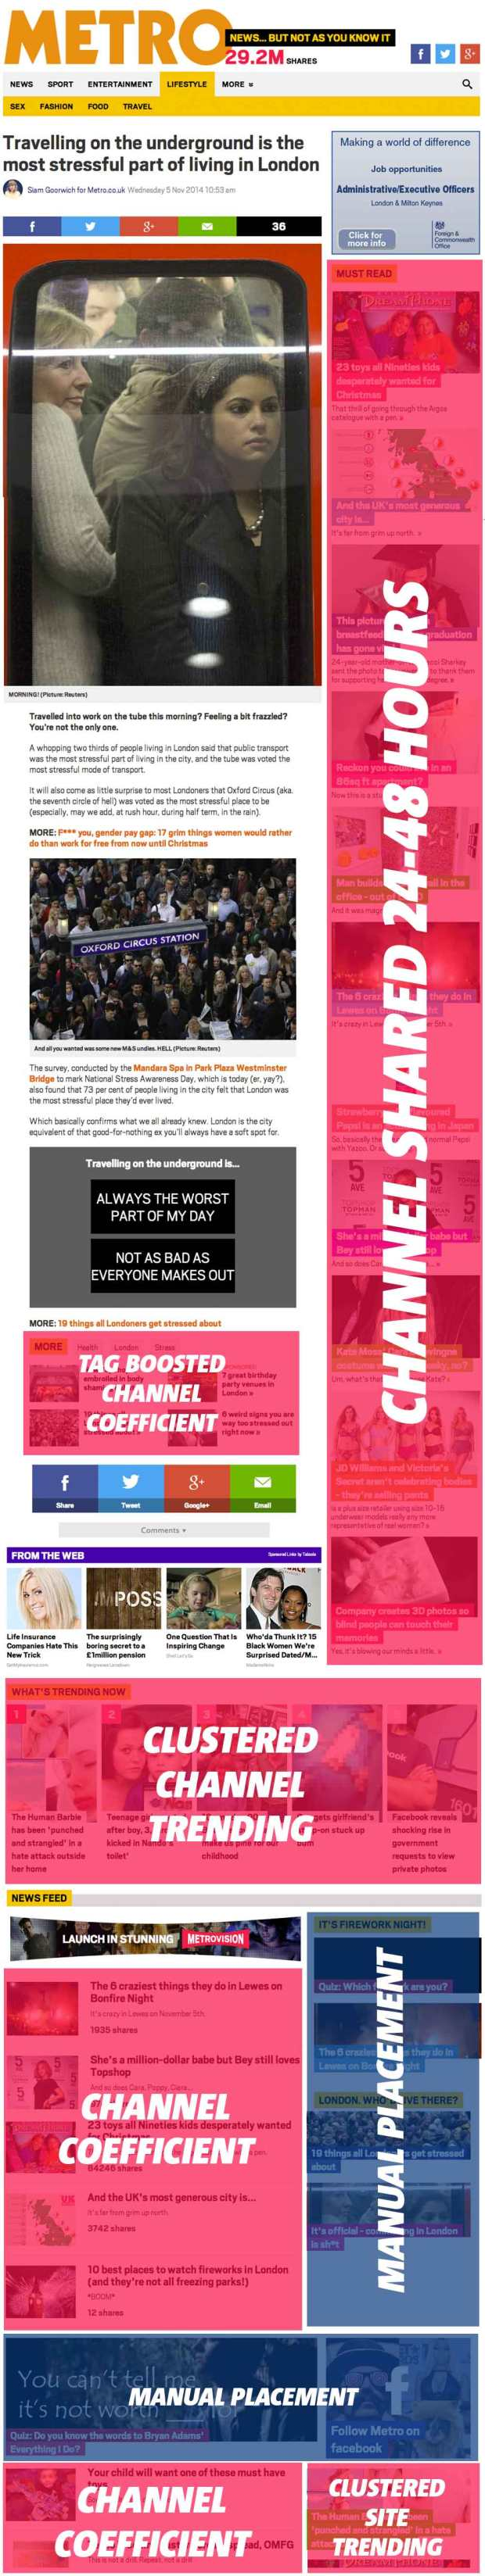 Metro Article Page Placement